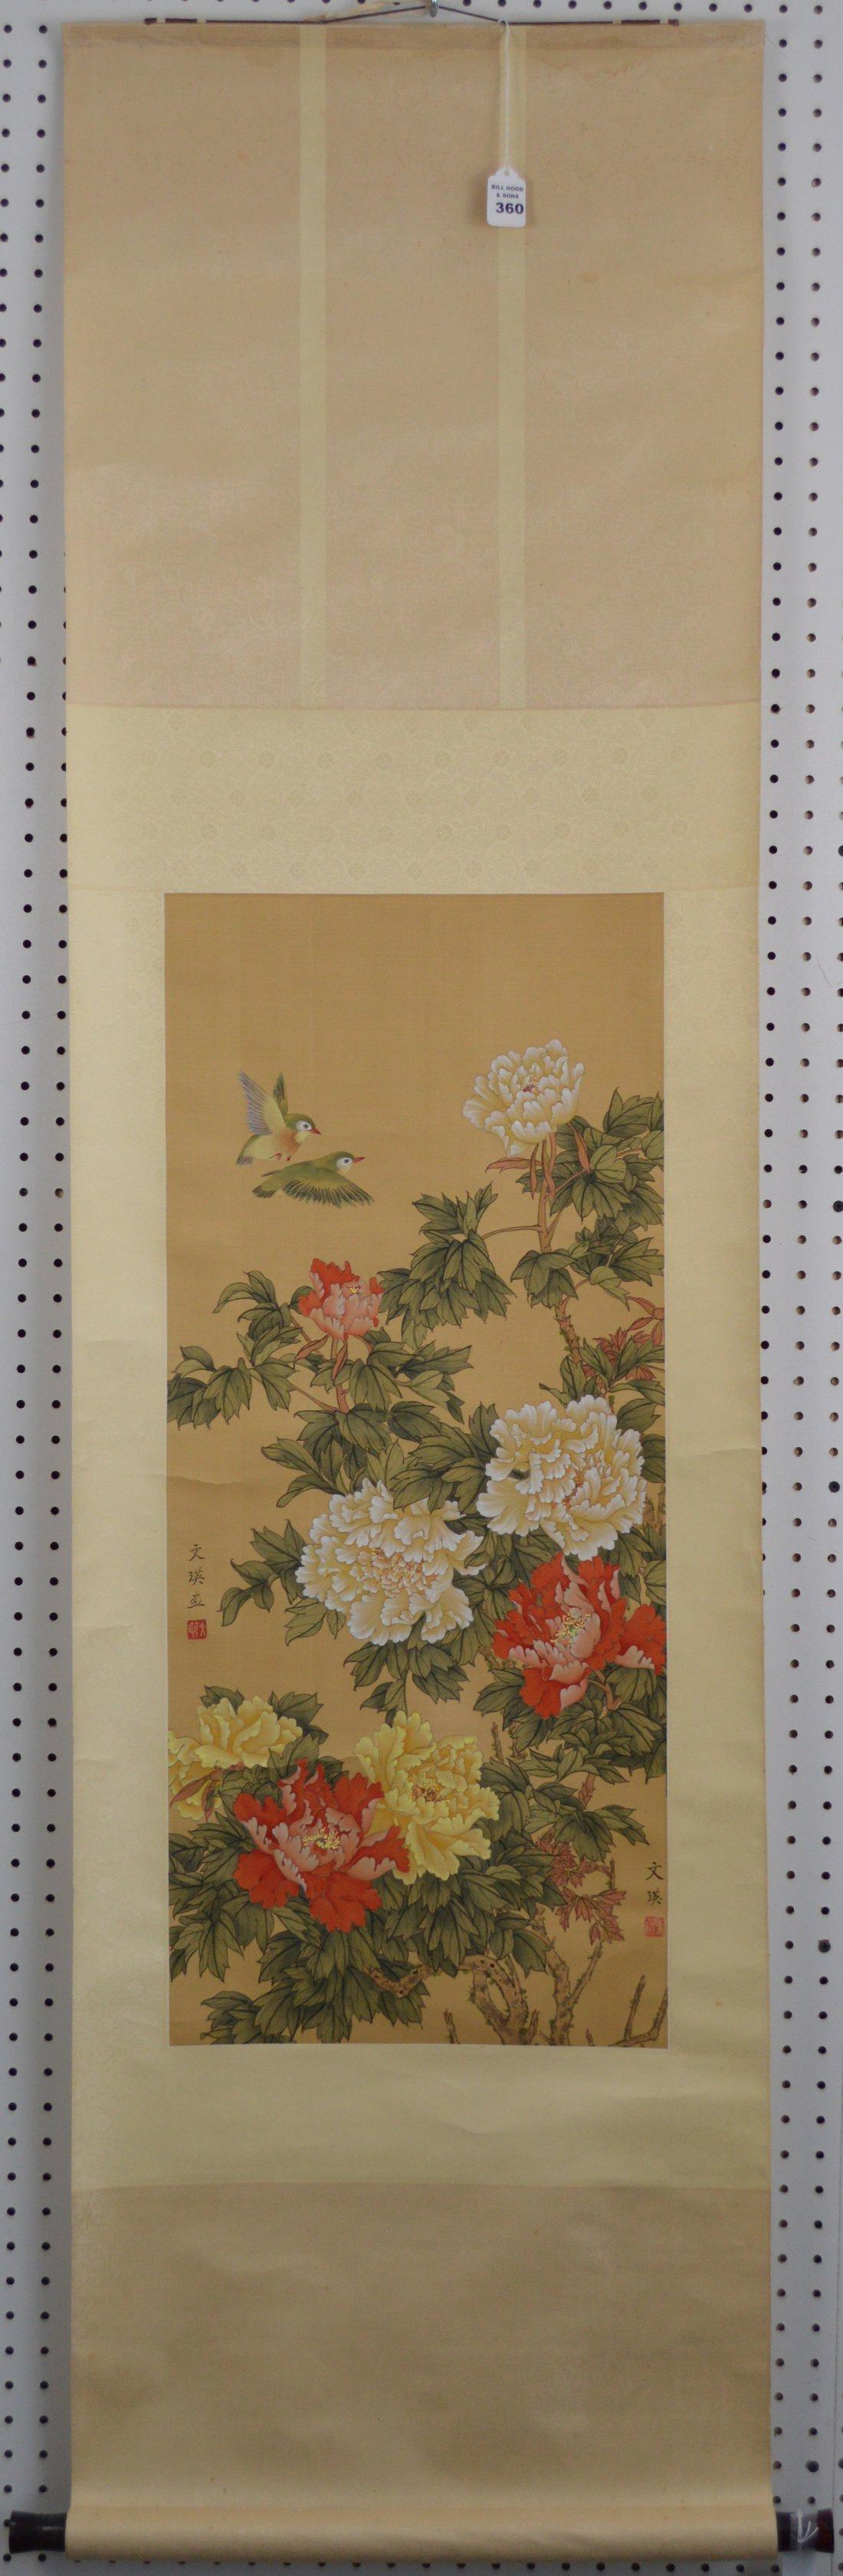 CHINESE SCROLL PAINTING REPUBLIC , landscape flower and